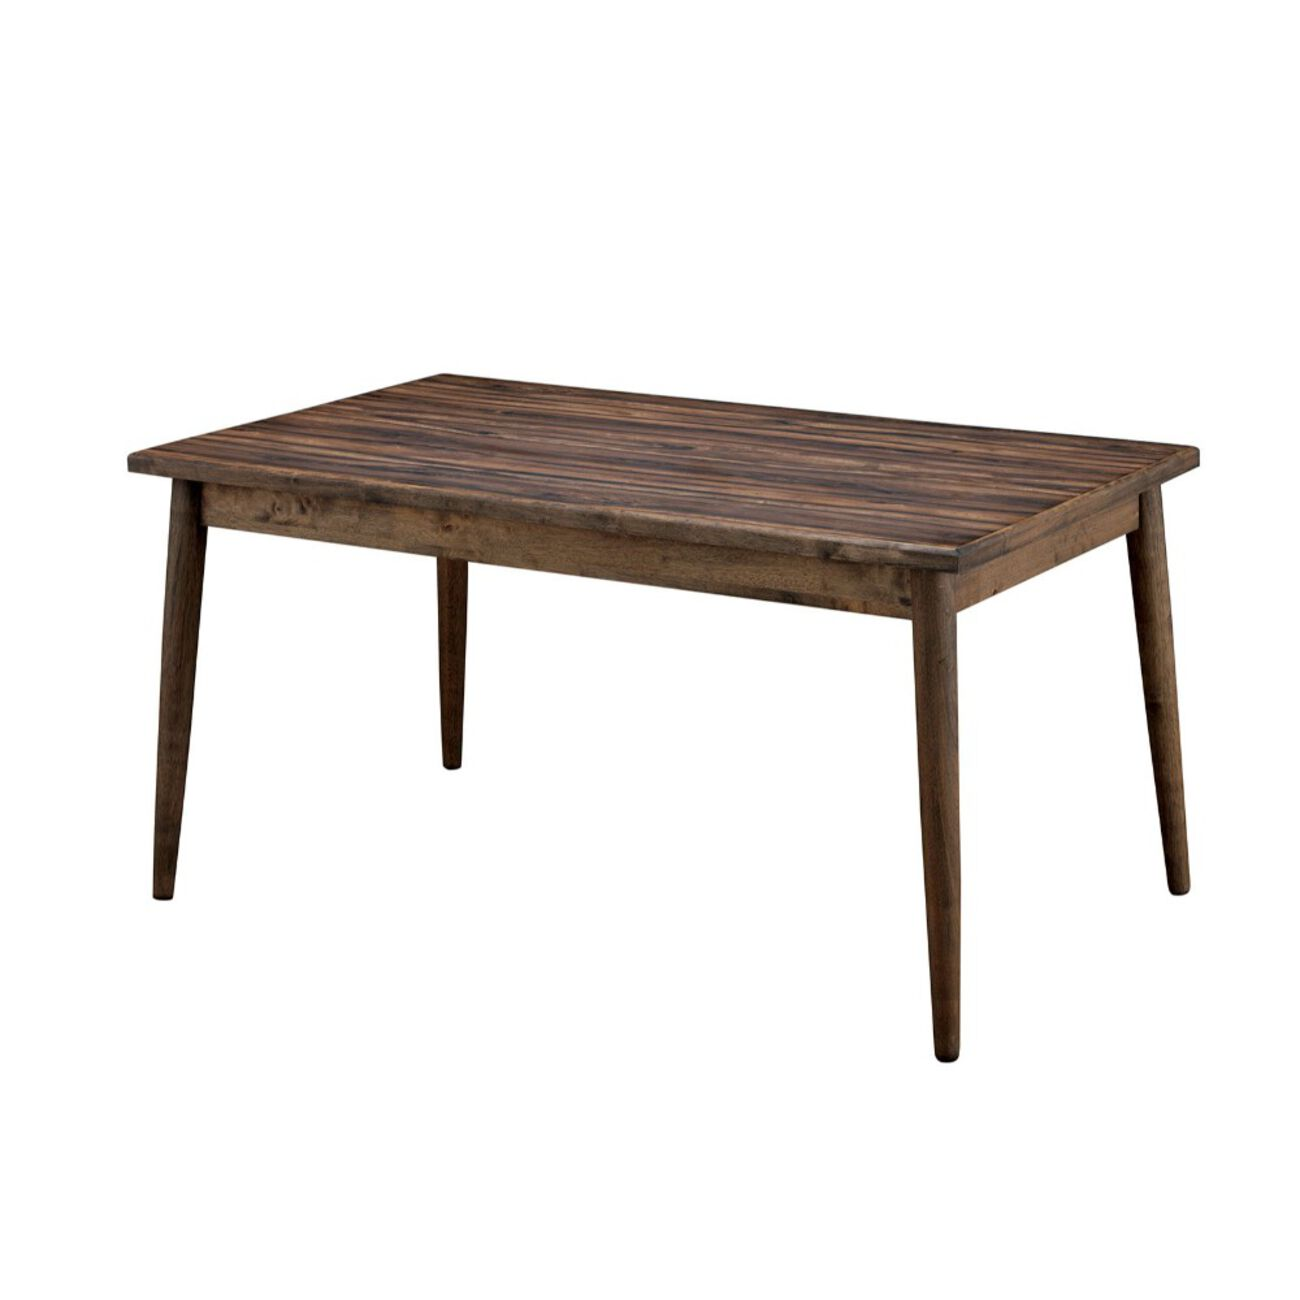 Eindride Mid-Cent Modern Dining Table, Brown